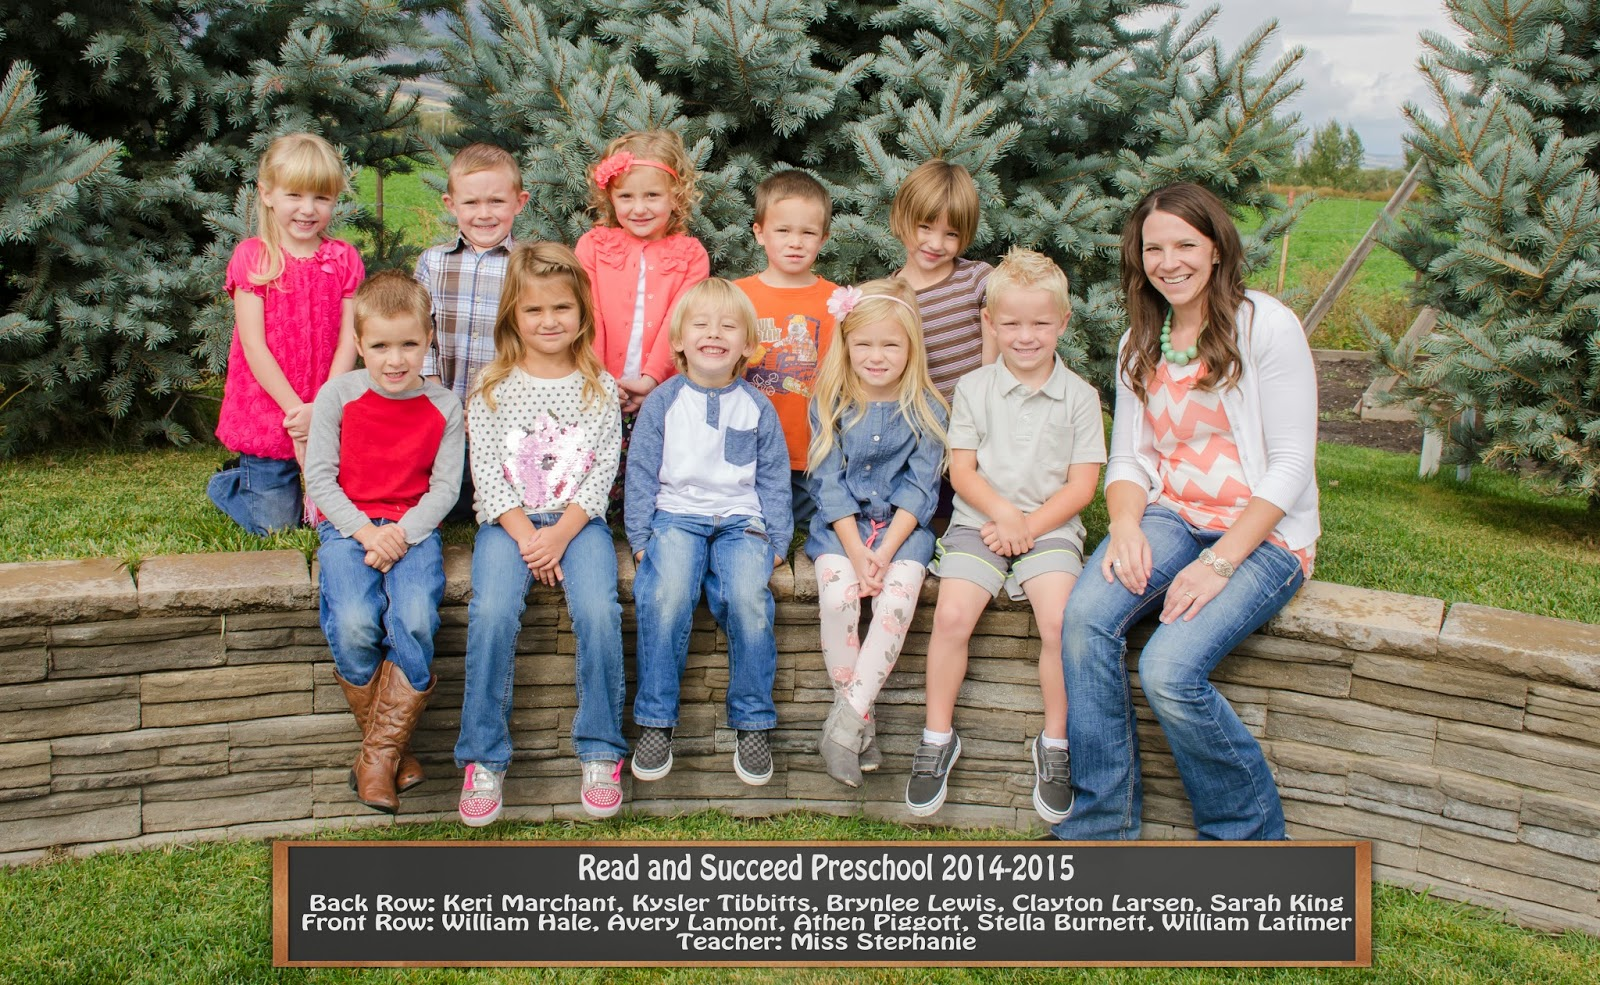 Read and Succeed Preschool Pictures | Wellsville, Utah